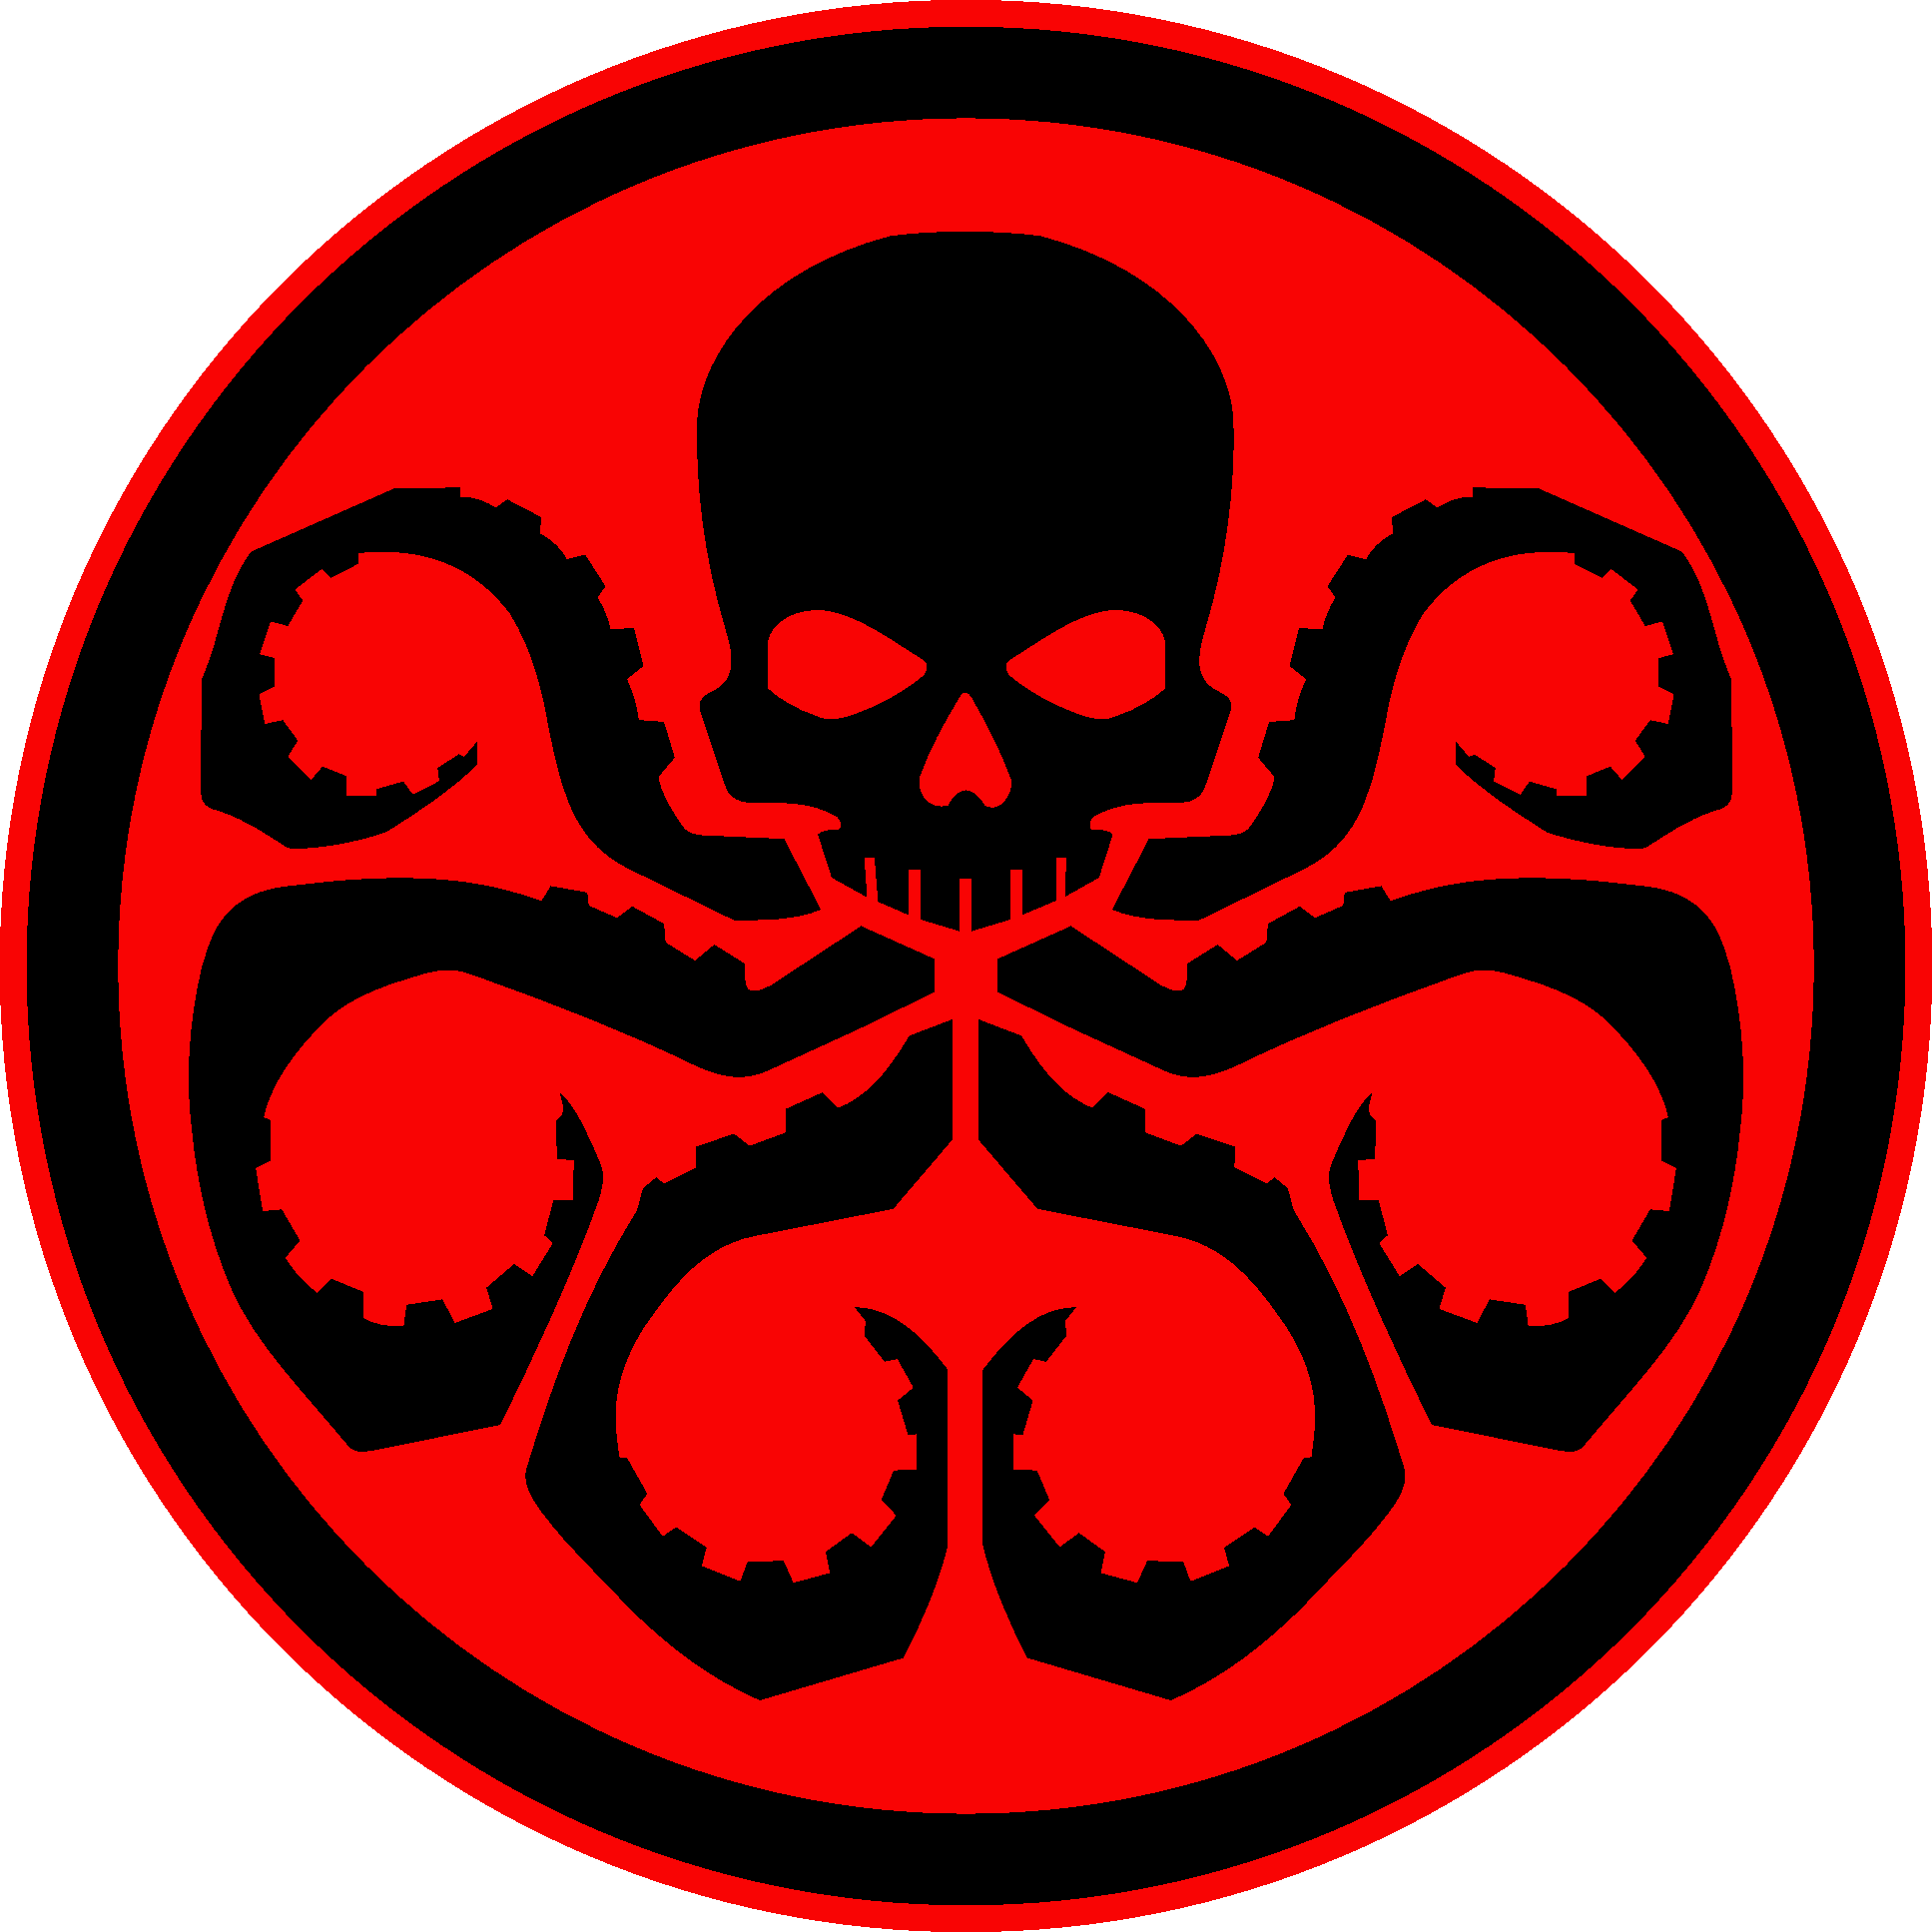 Hydra (Marvel Cinematic Universe)